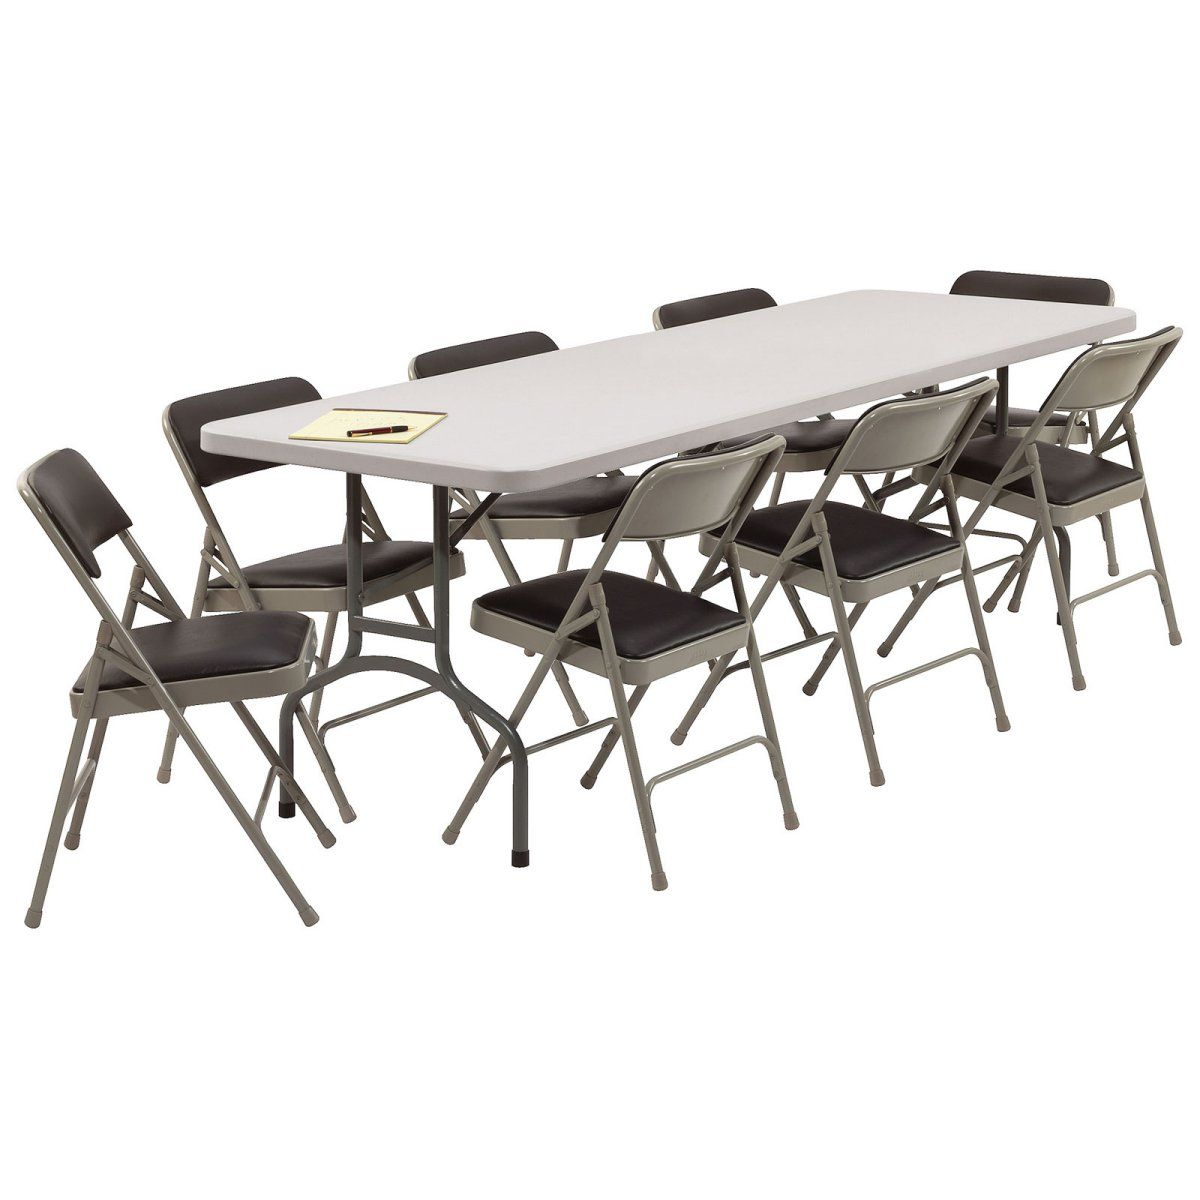 Room Design Round Folding Table And Chairs For Family And